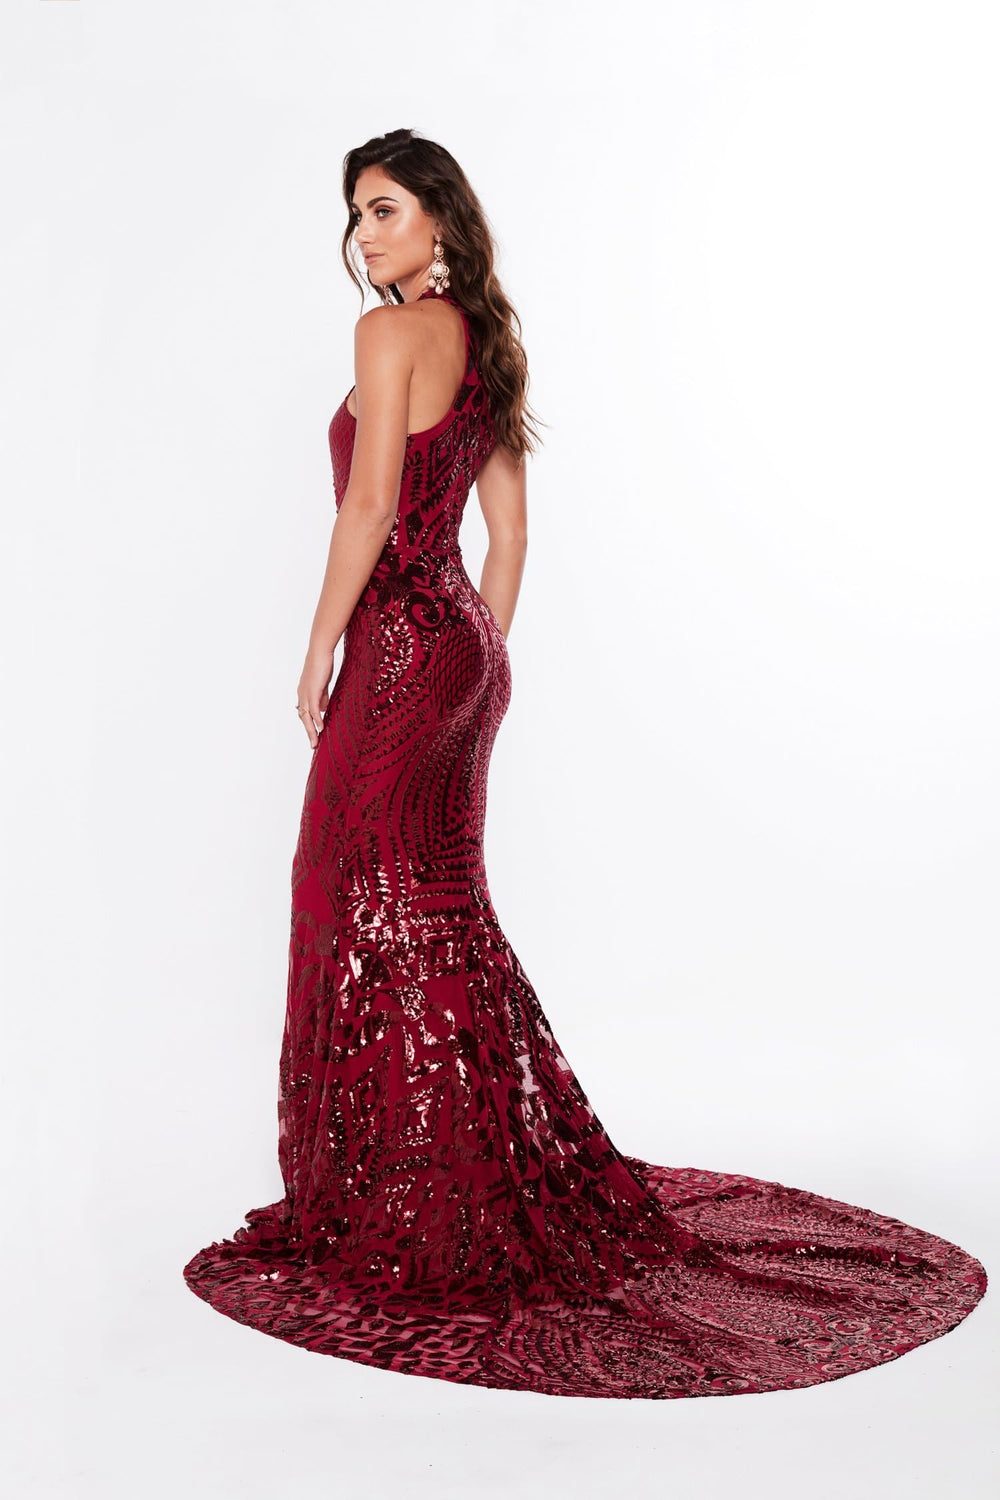 A&N Fabiana- Sequin Burgundy Gown with High Neckline and Mermaid Train